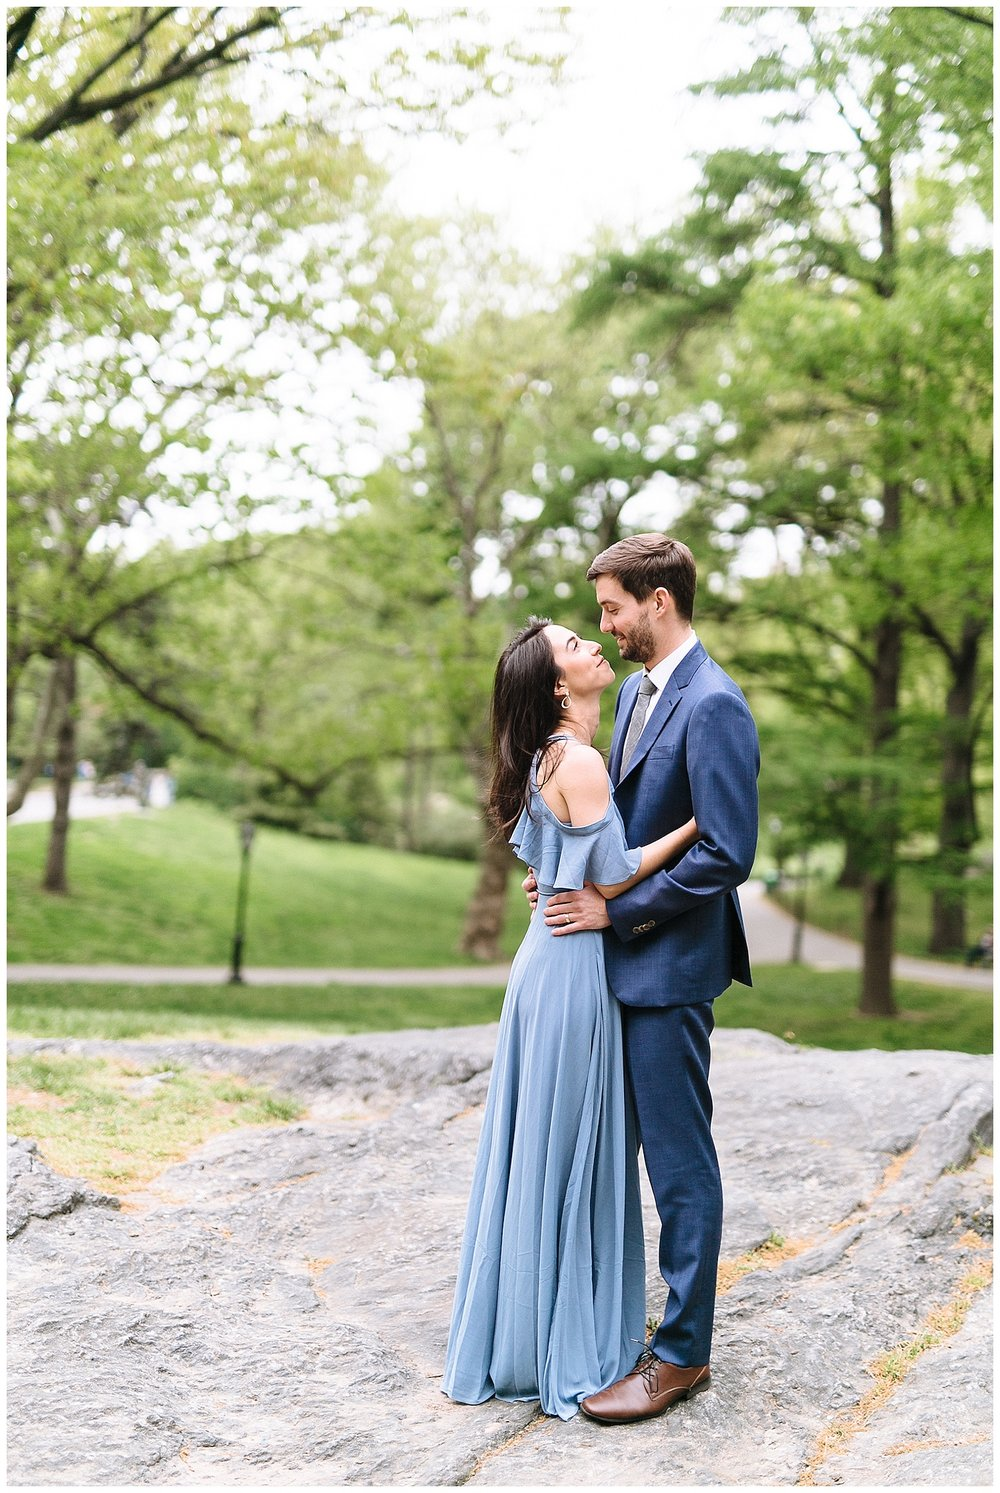 NYC Anniversary Session | Central Park and Belvedere Castle | New York City Anniversary | www.redoakweddings.com